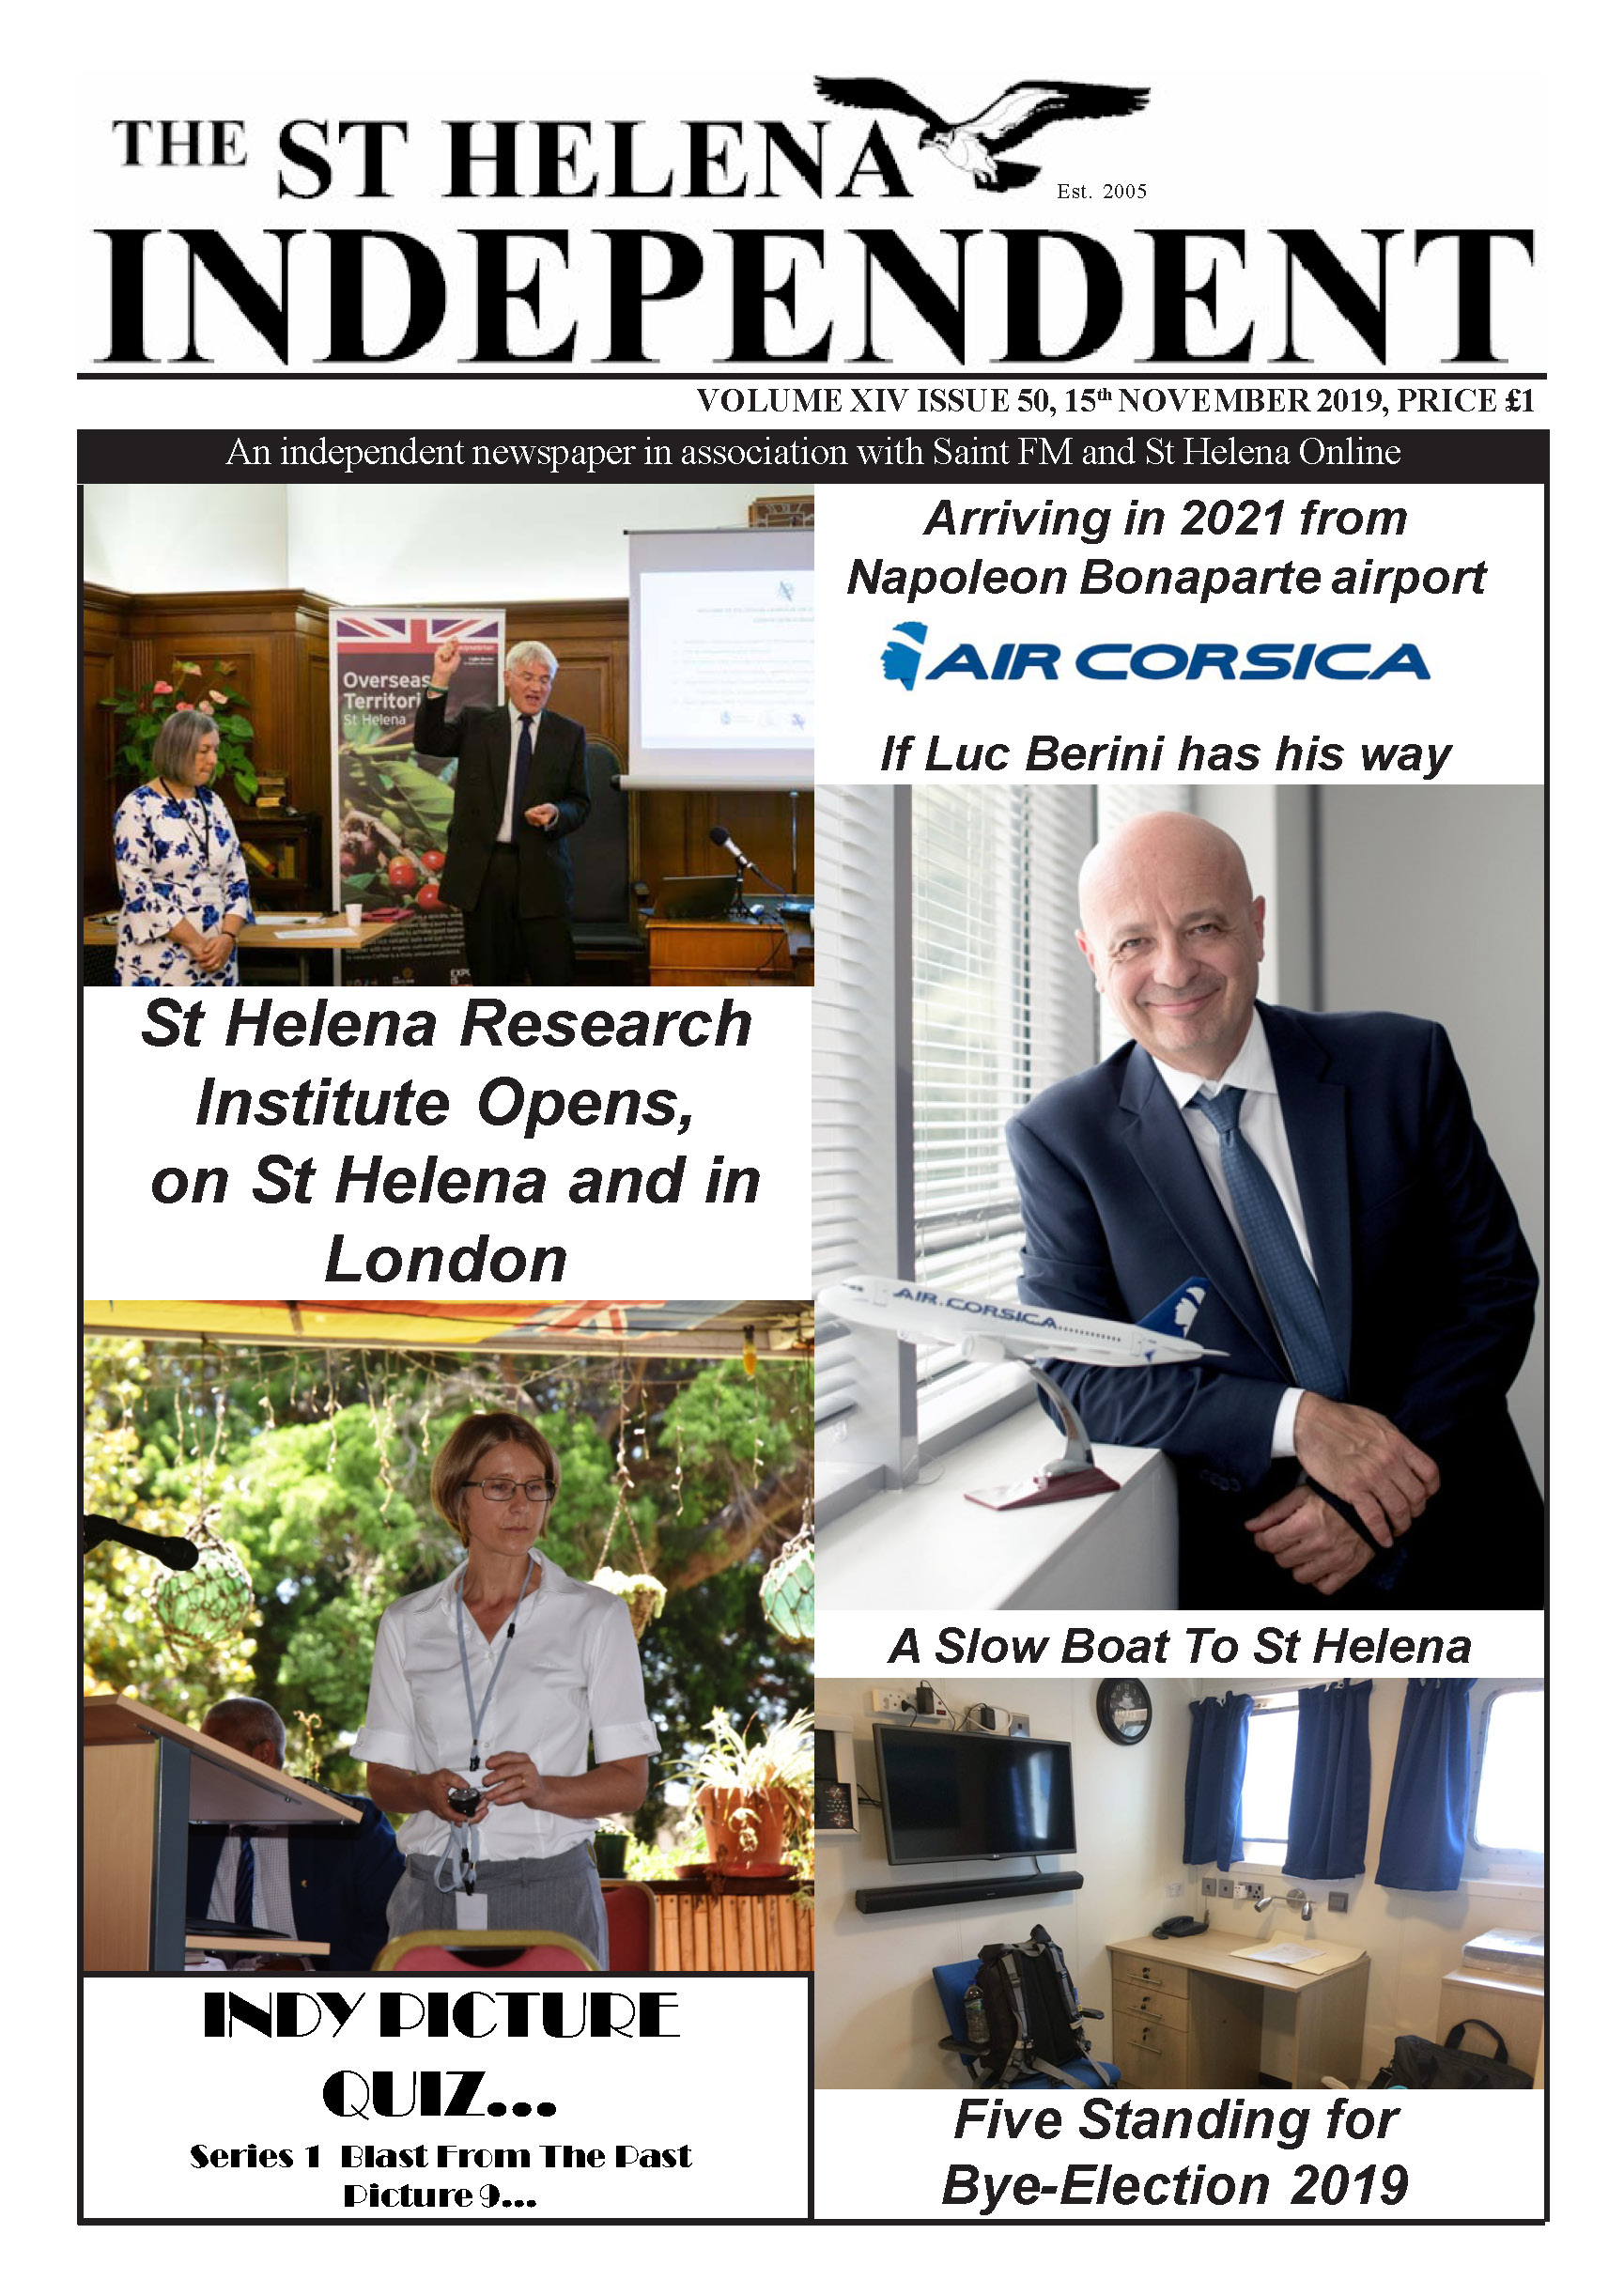 St Helena Independent 20191115